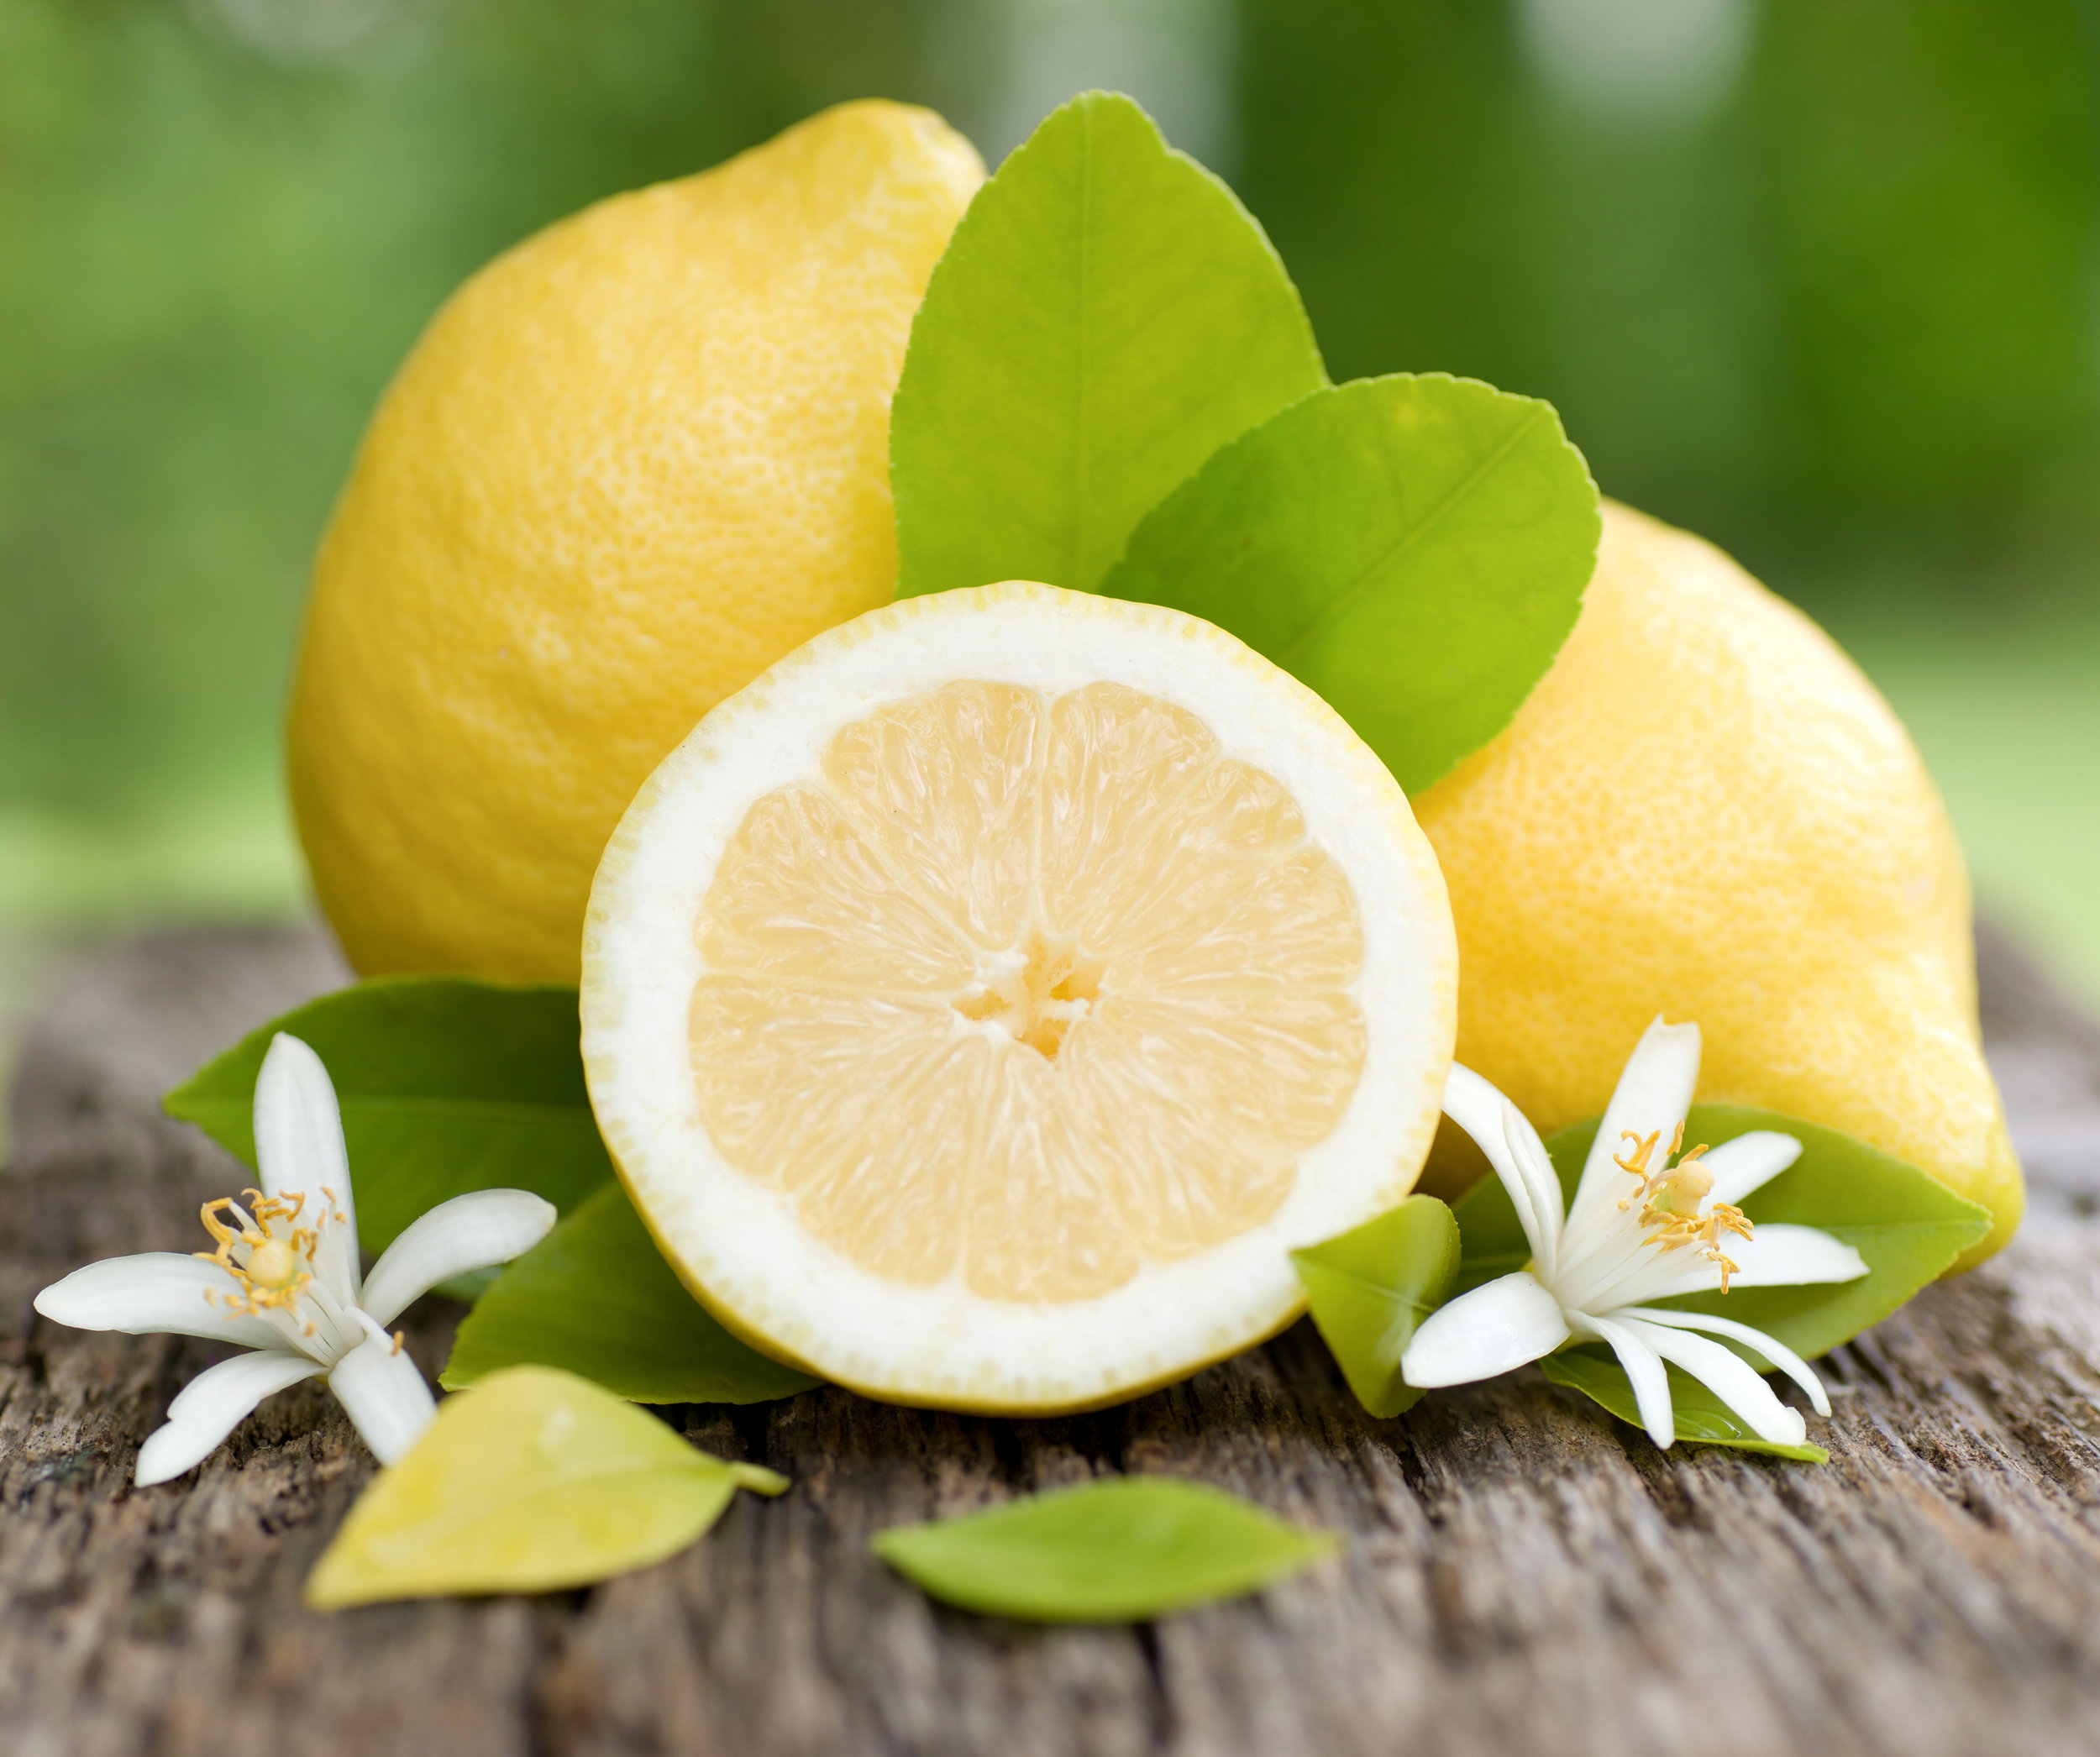 AdobeStock_42571888 lemon.jpeg